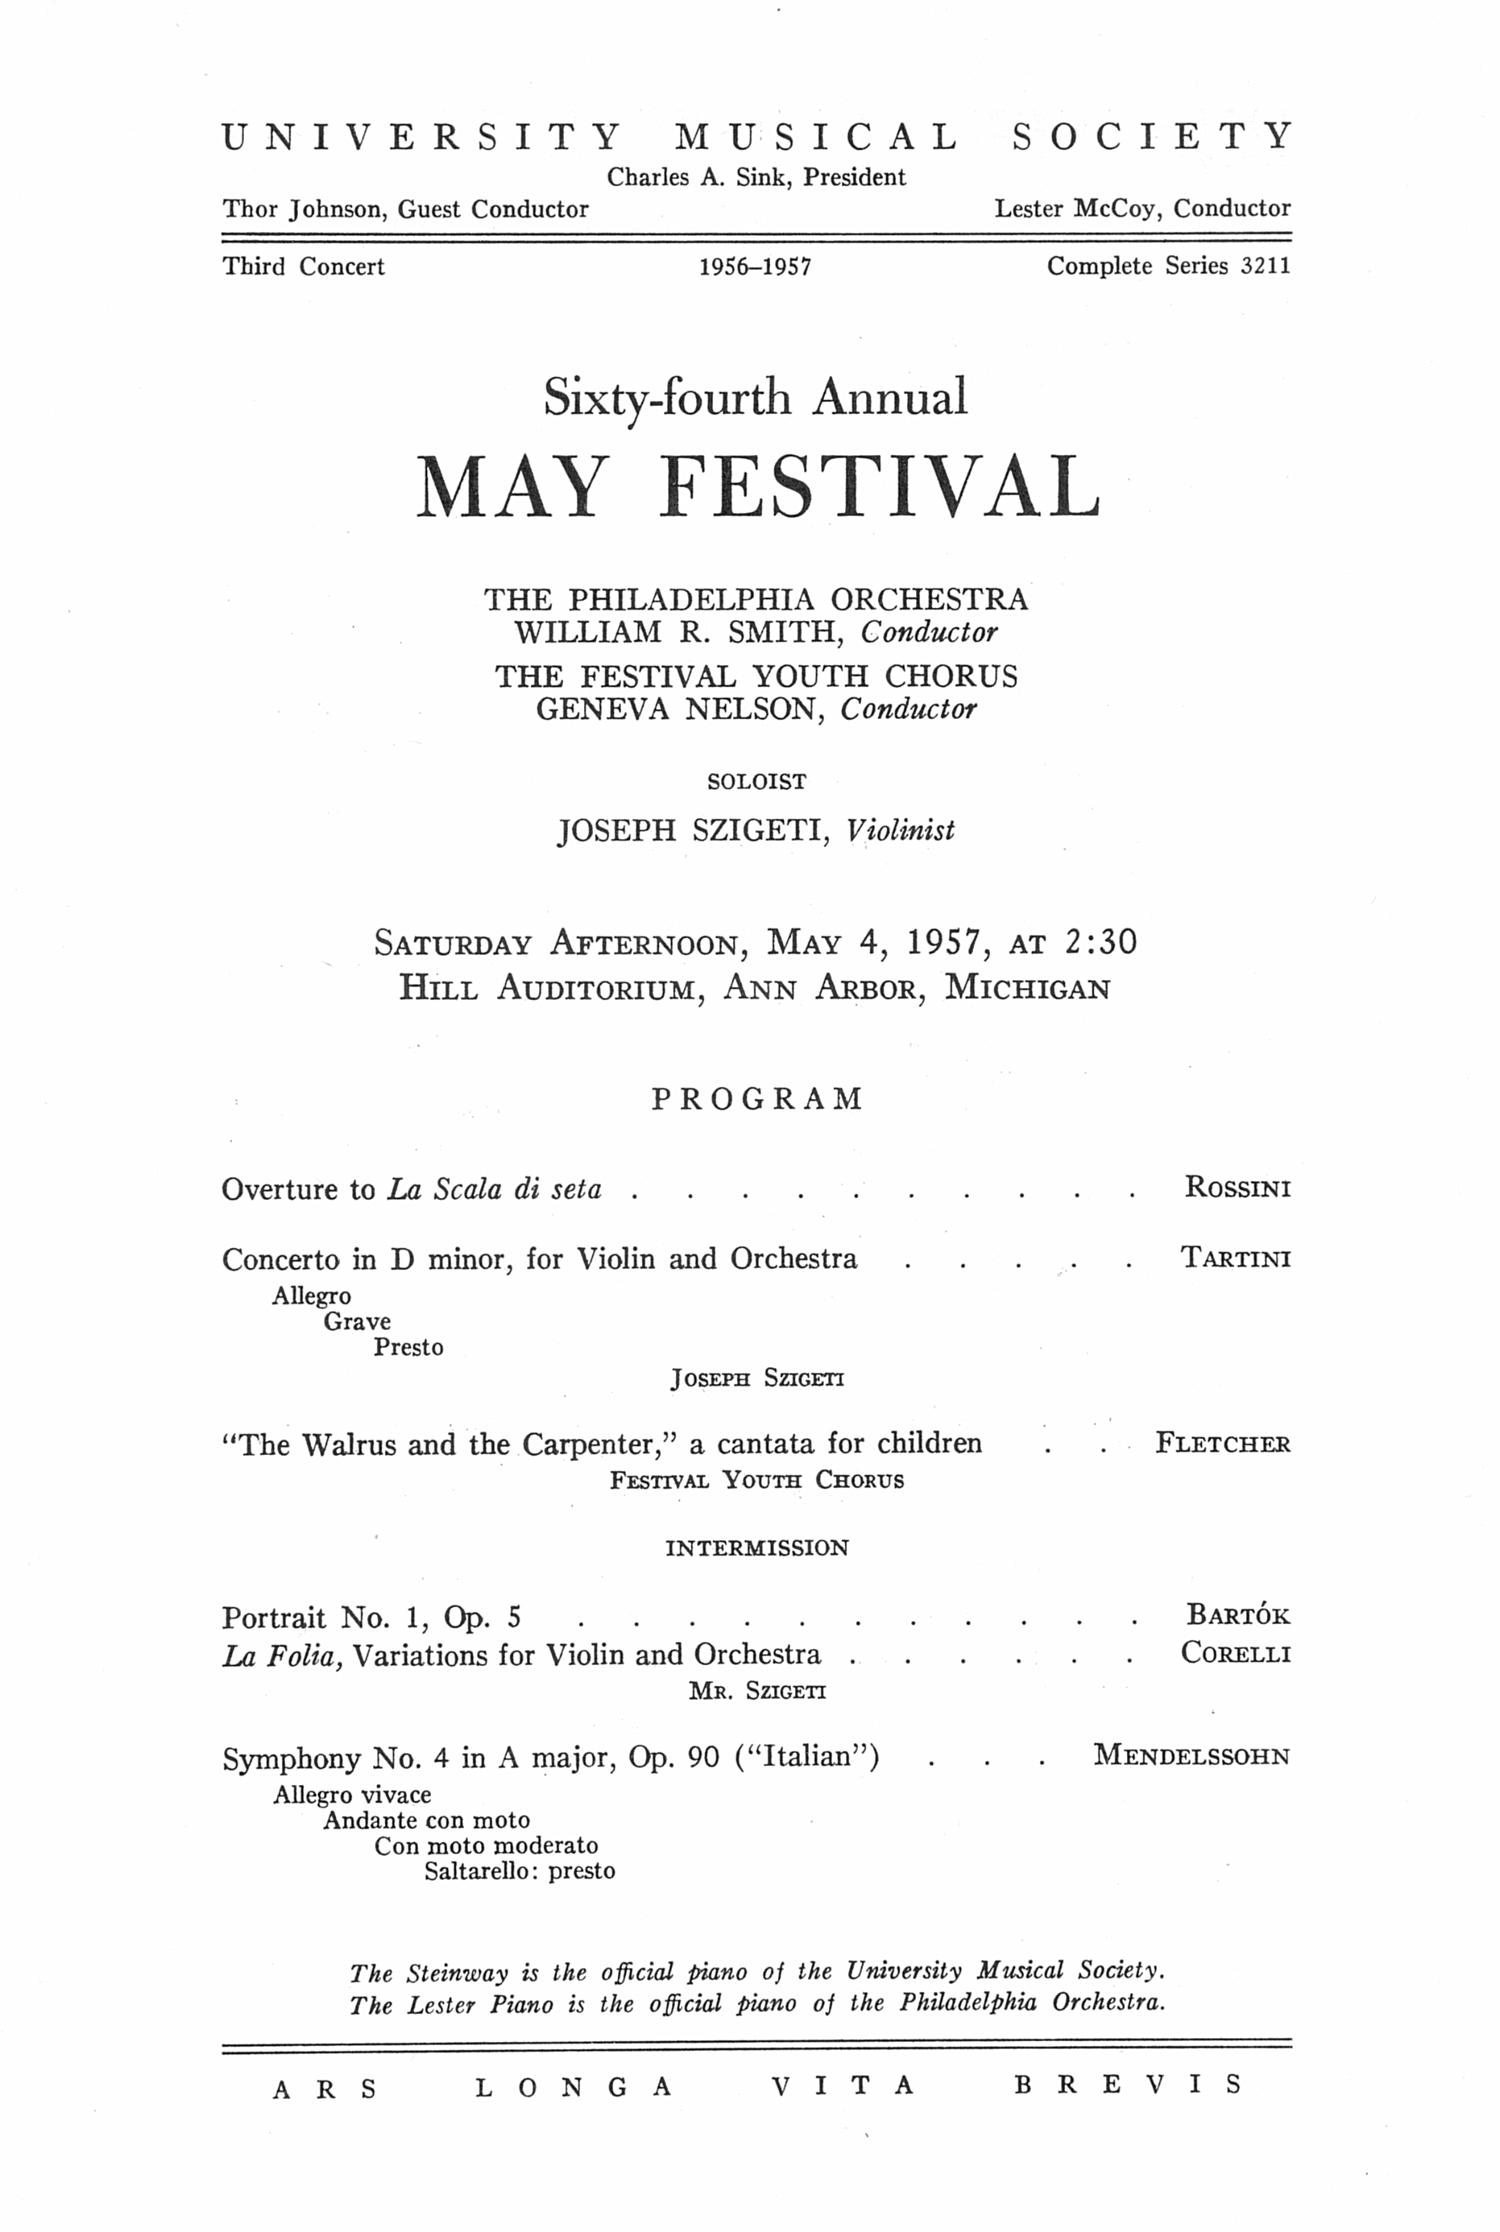 UMS Concert Program, May 4, 1957: Sixty-fourth Annual May Festival -- The Philadelphia Orchestra image